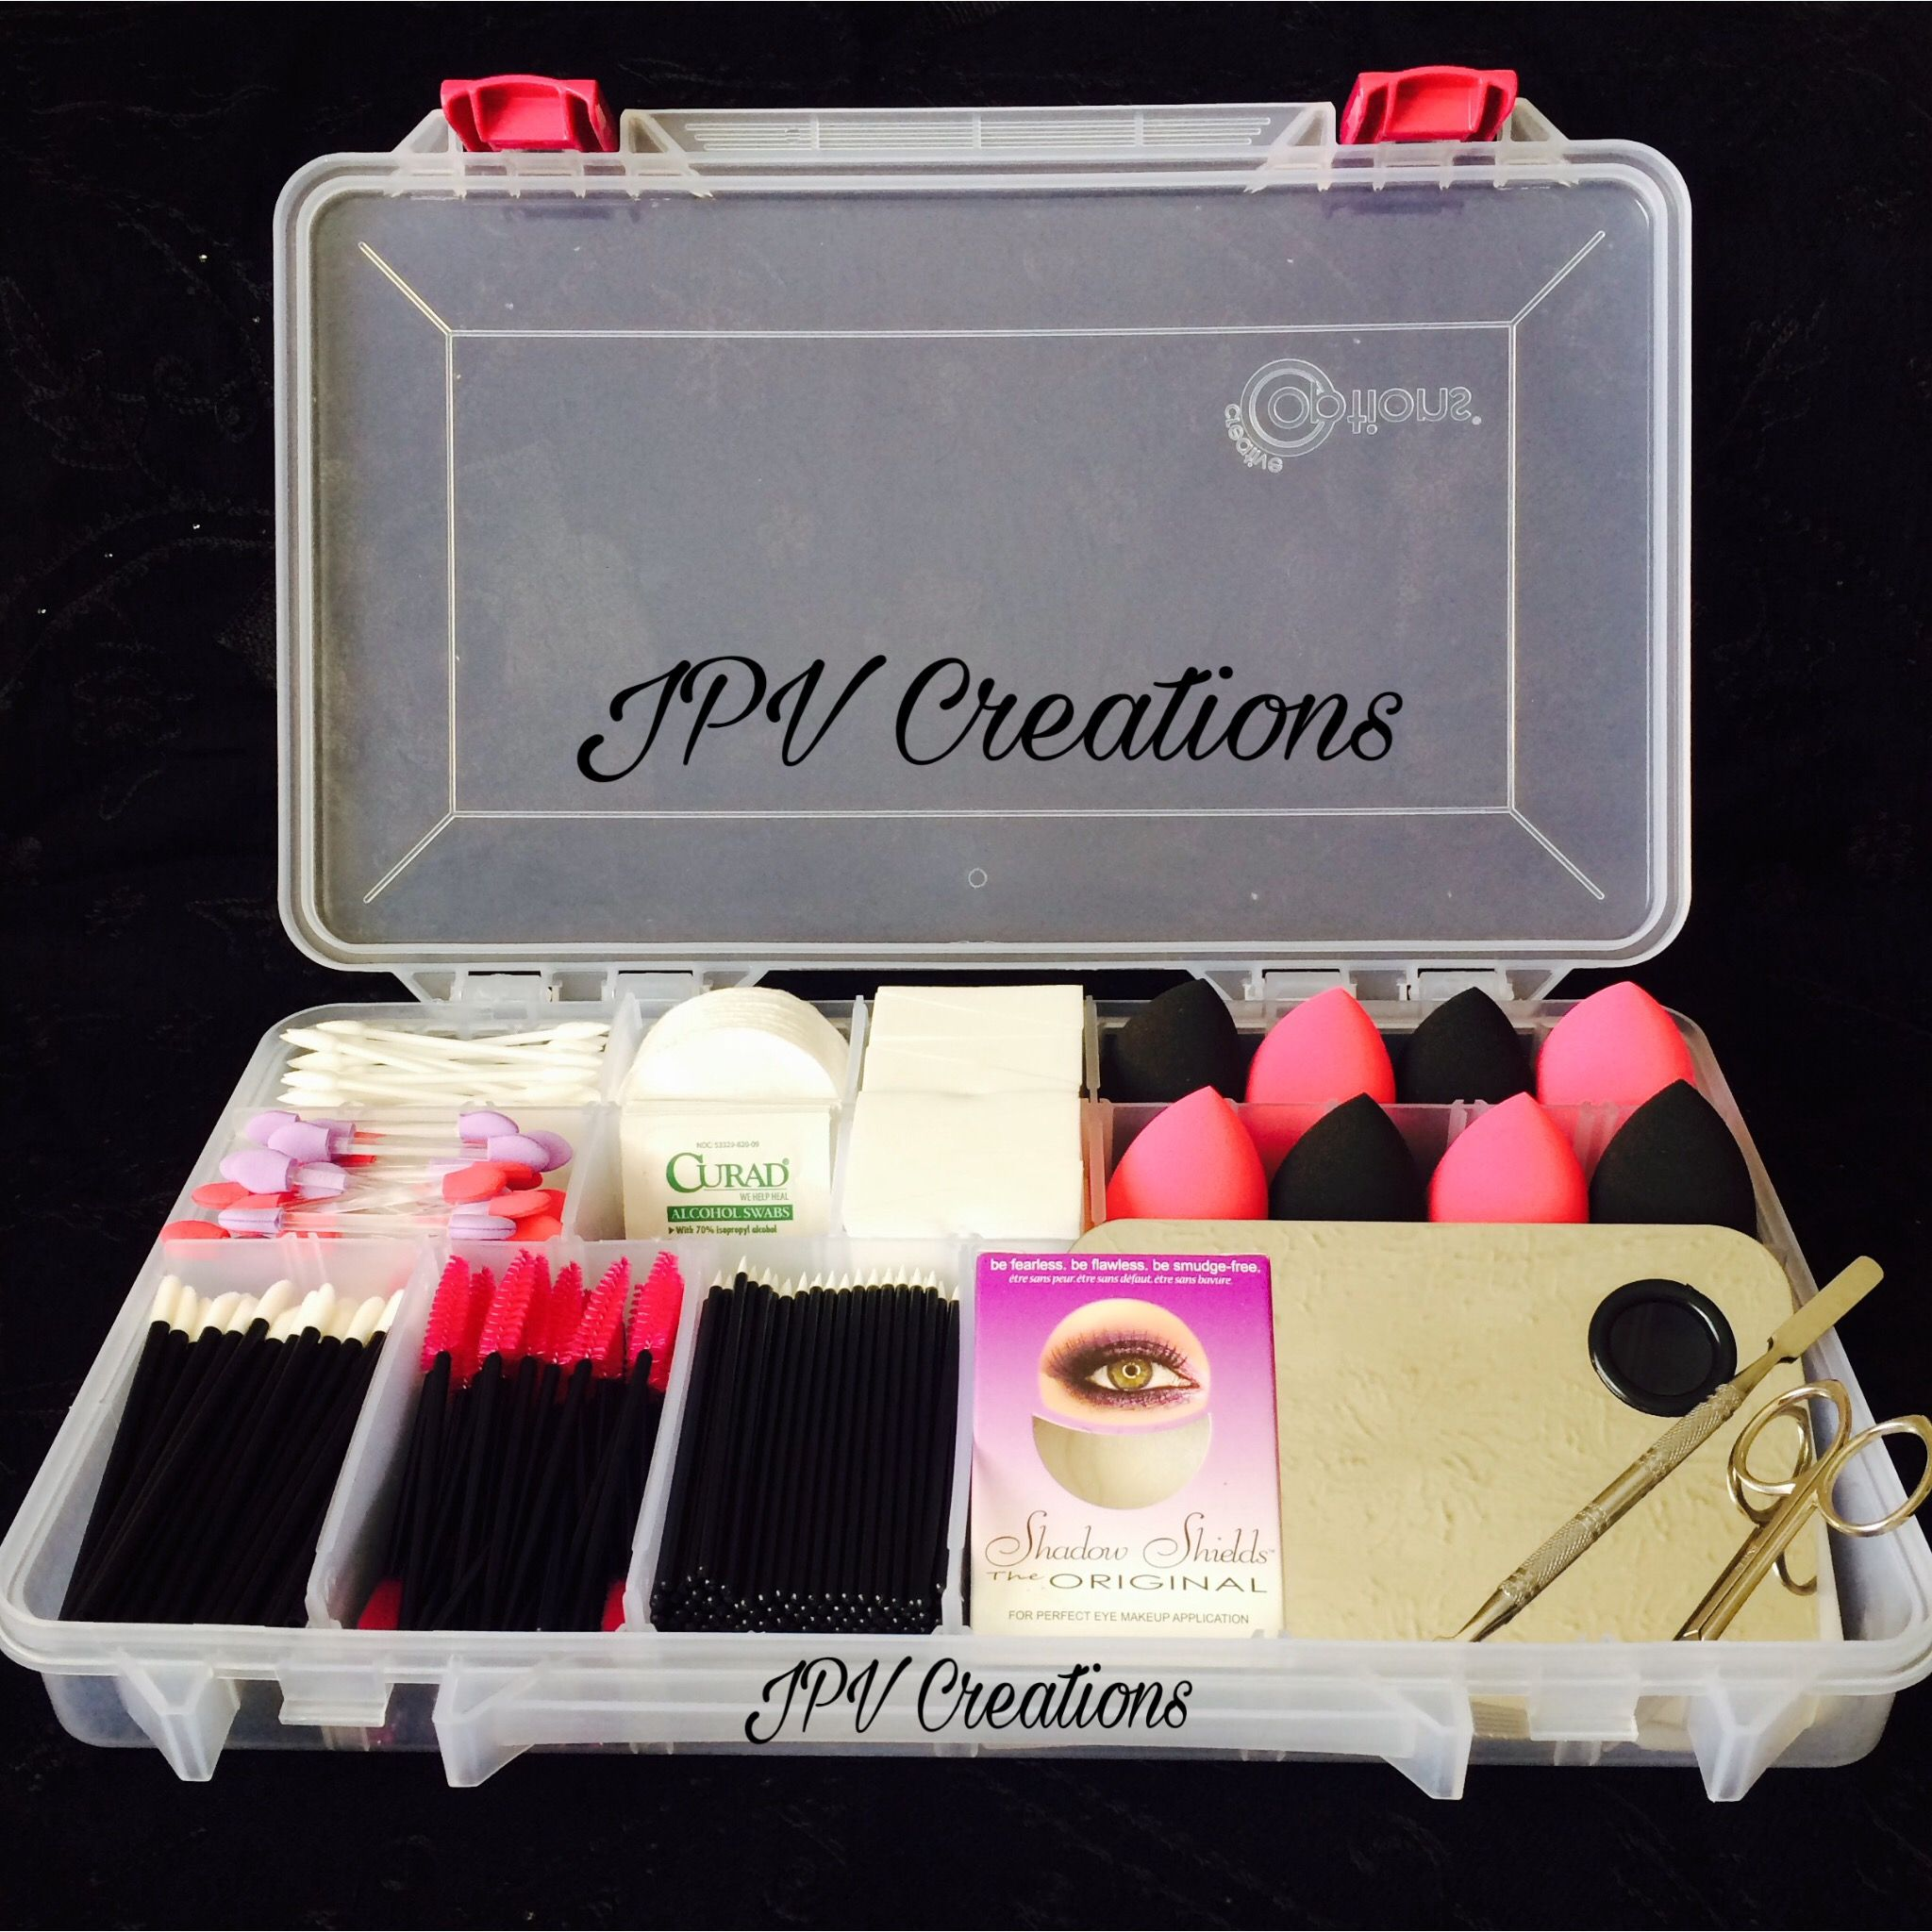 Disposable Makeup Applicators Kit Organized By Pv